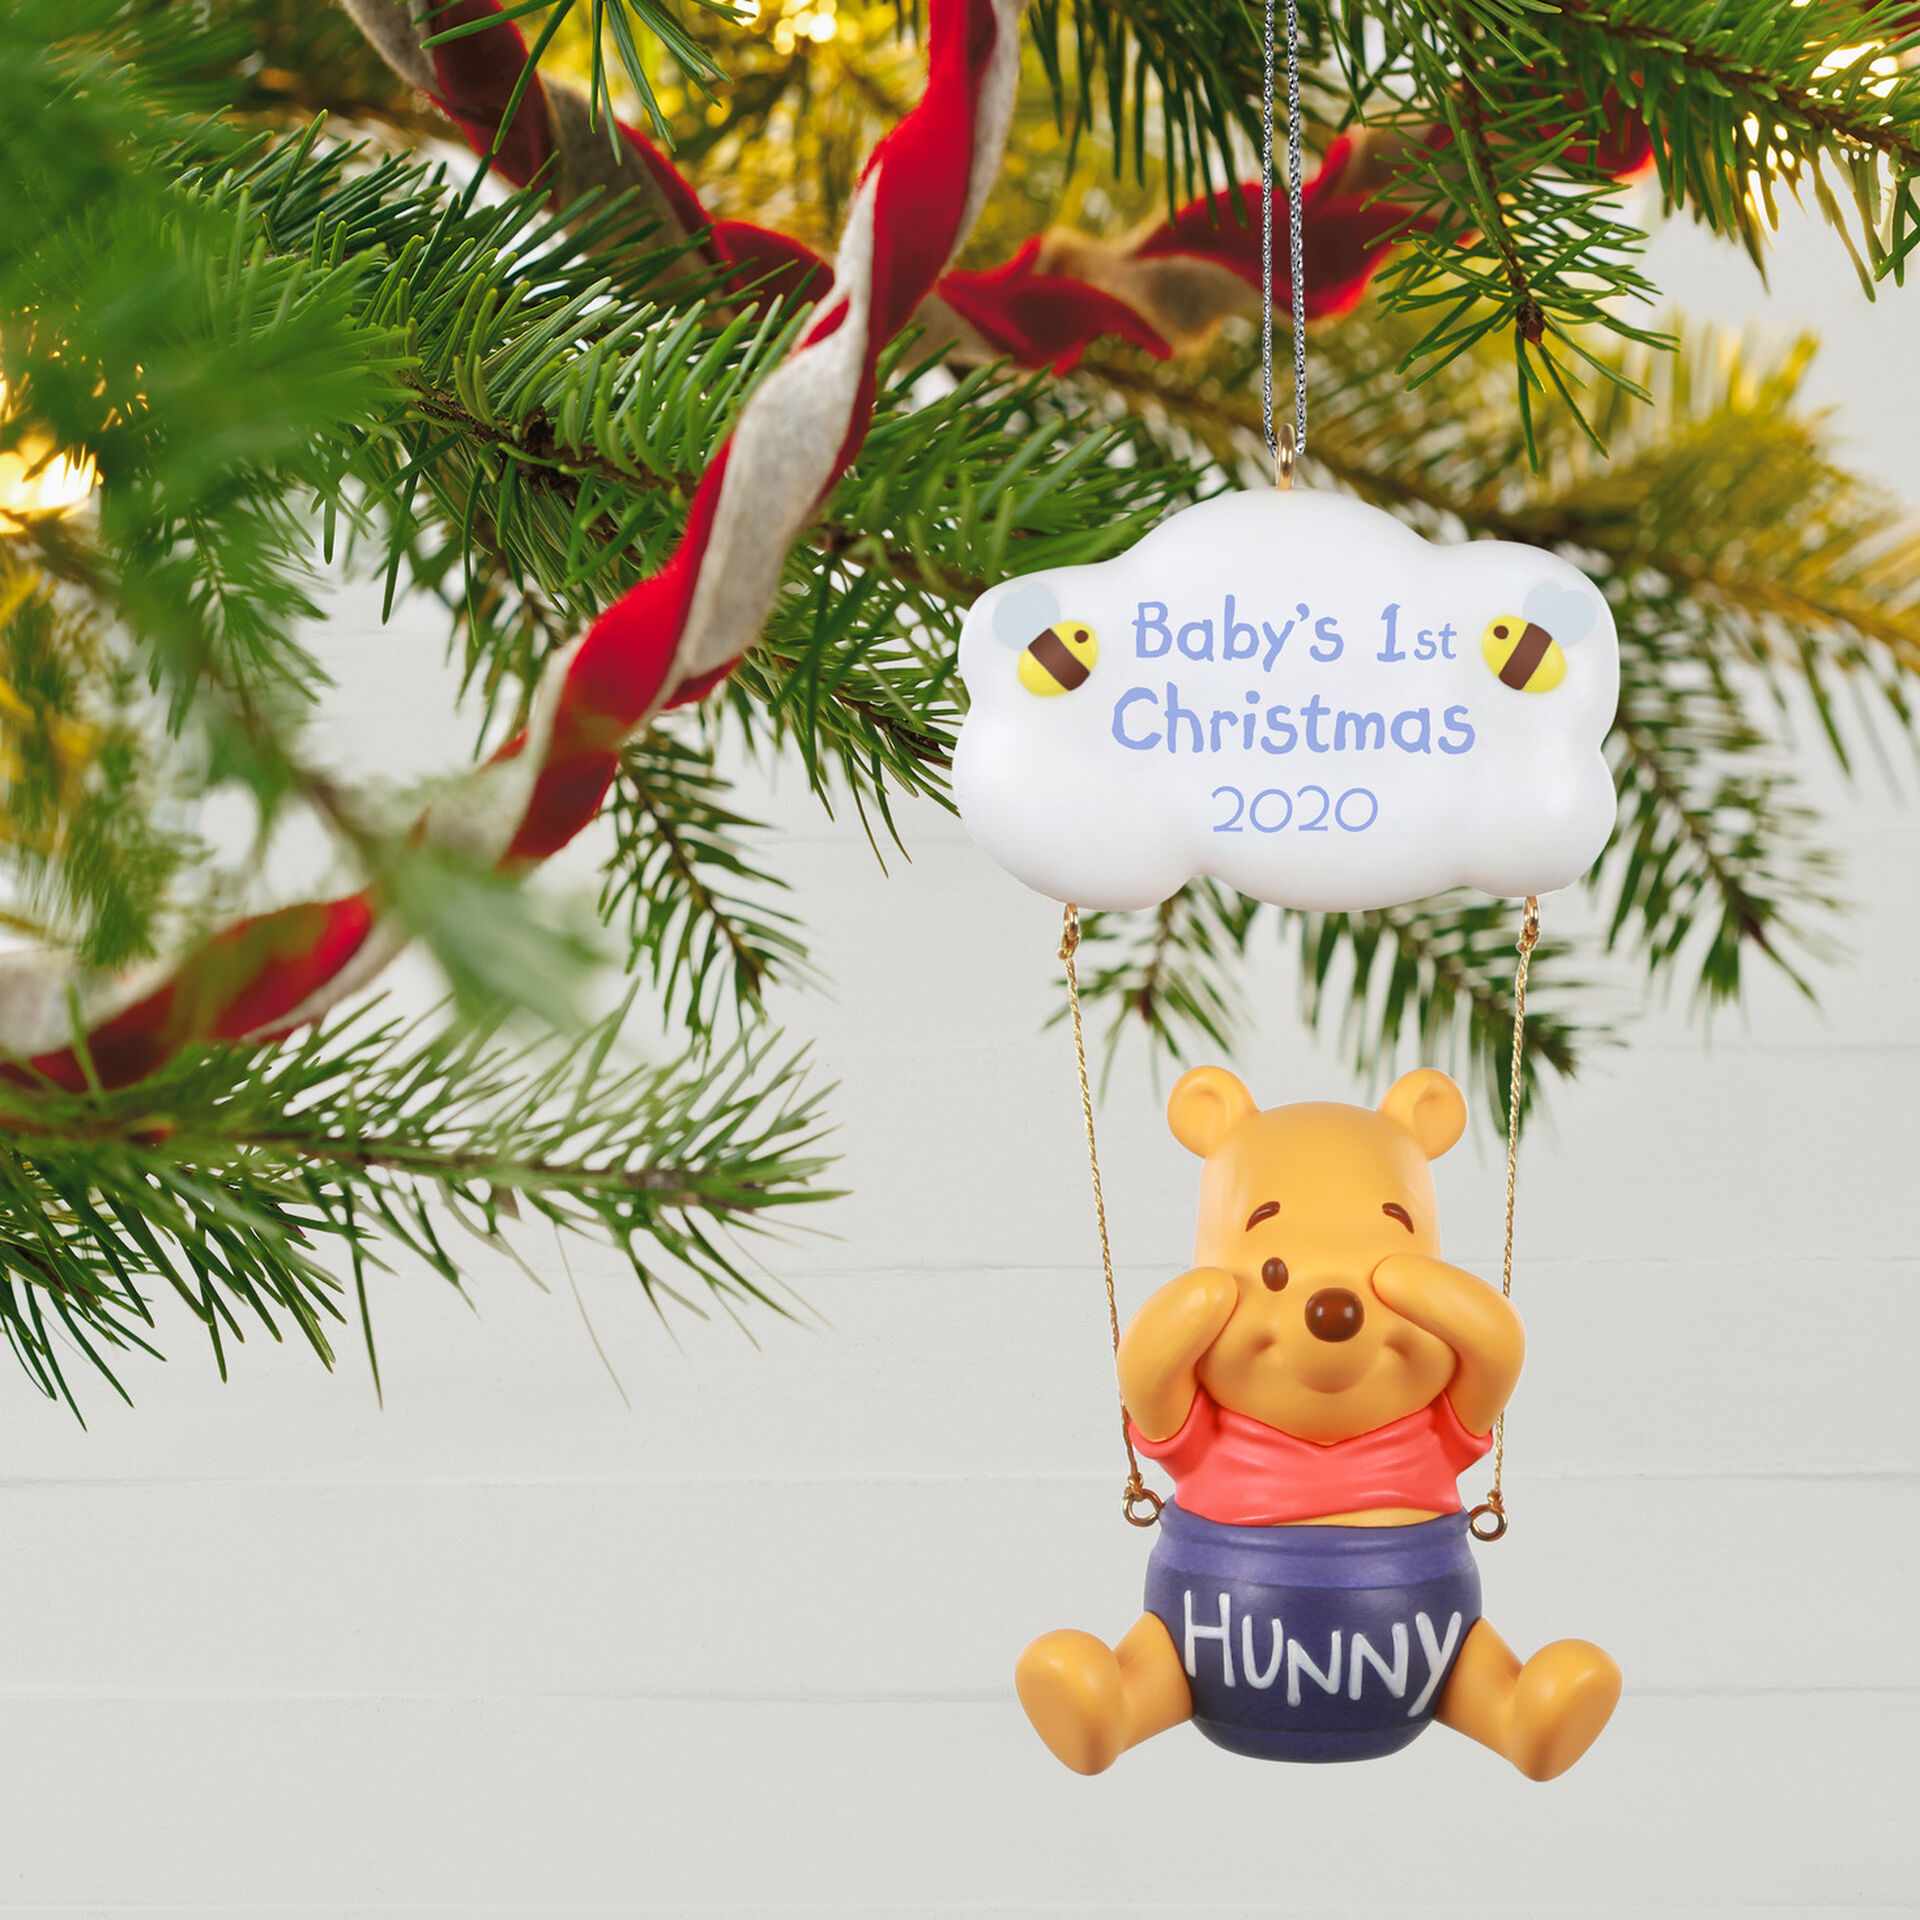 Babys Second Christmas Globe 2020 Disney Winnie the Pooh Baby's First Christmas 2020 Ornament